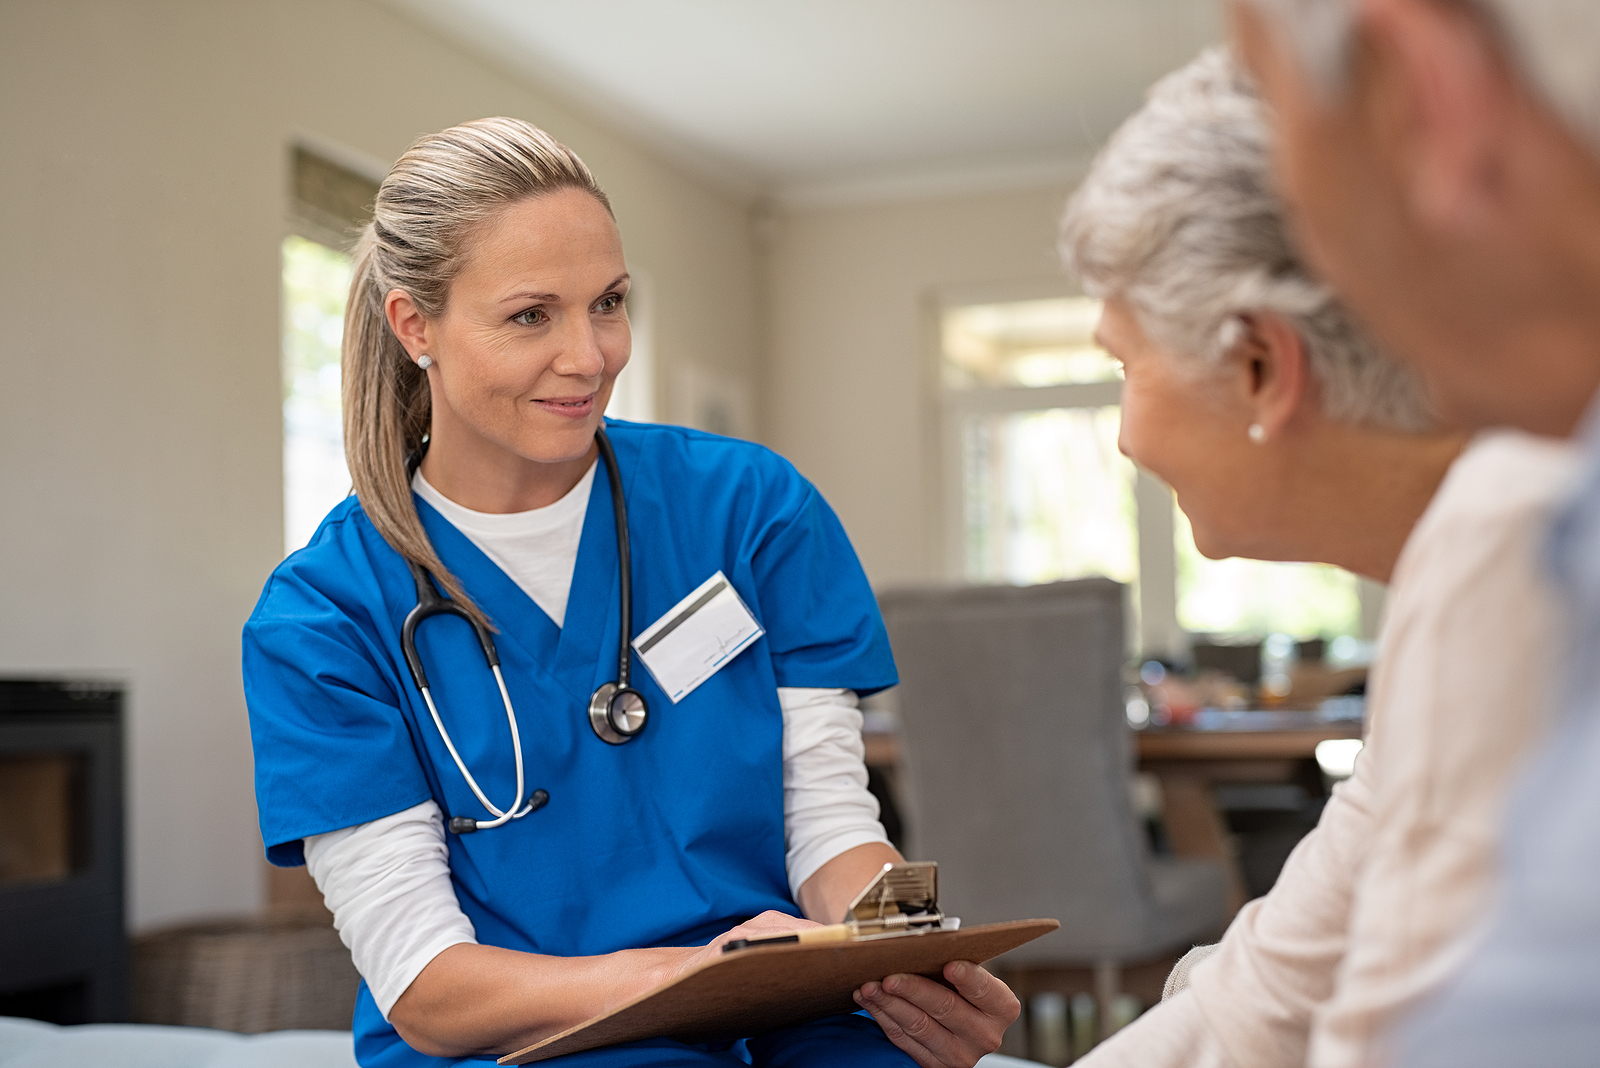 HIPAA and Caring for a Loved One from a Distance